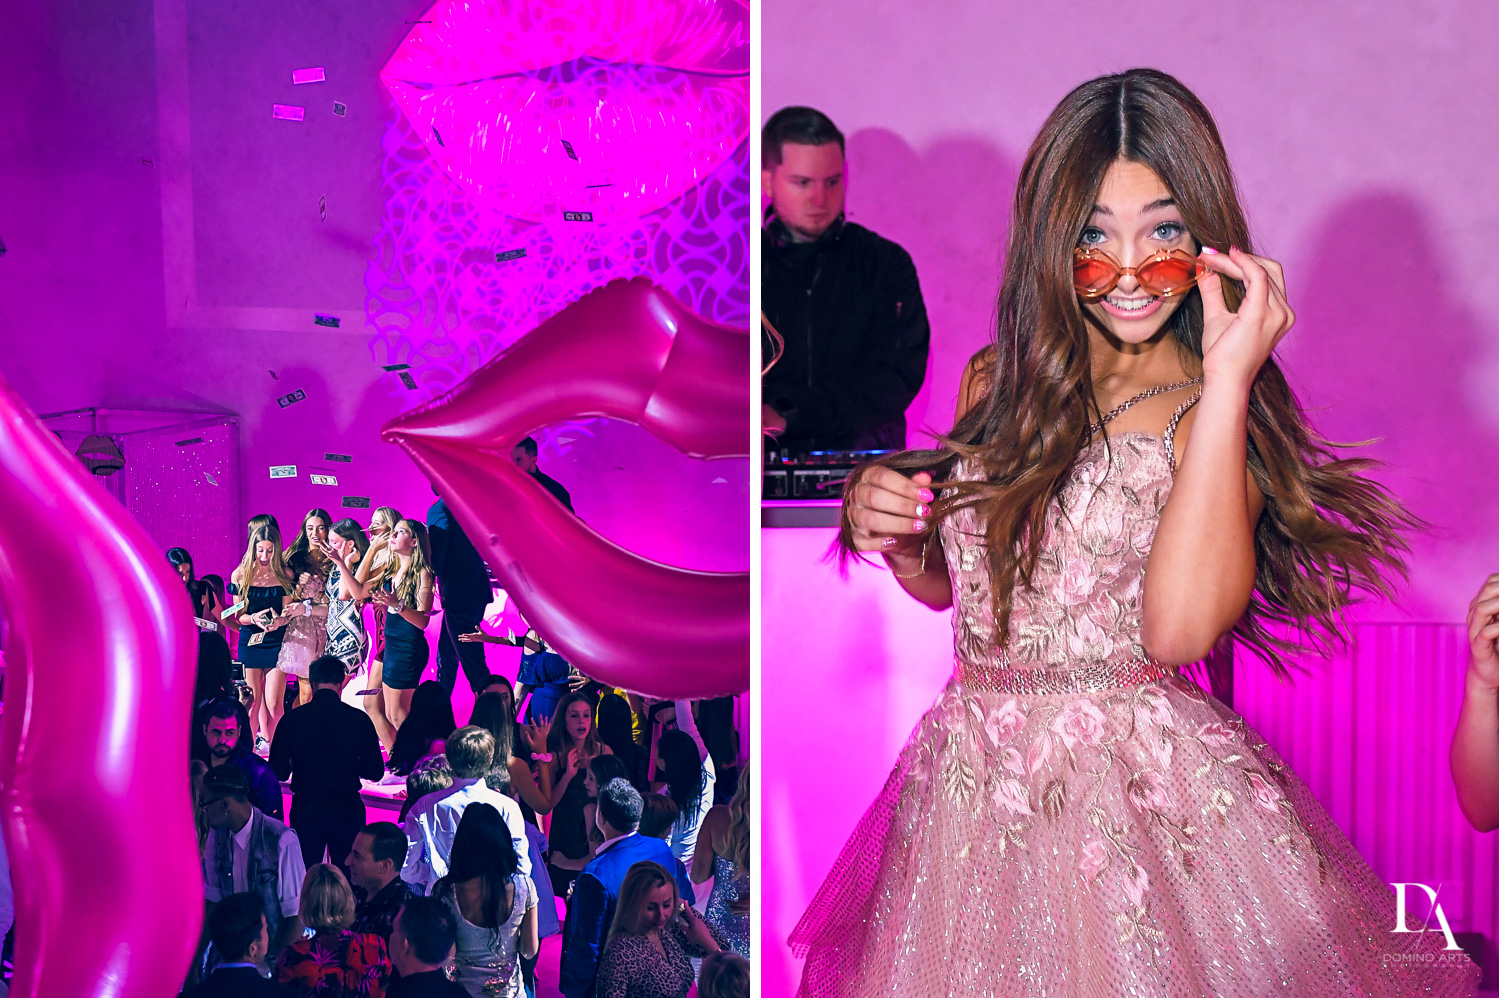 party pictures at Pink XO Bat Mitzvah at The Venue Crystal Ballroom by Domino Arts Photography